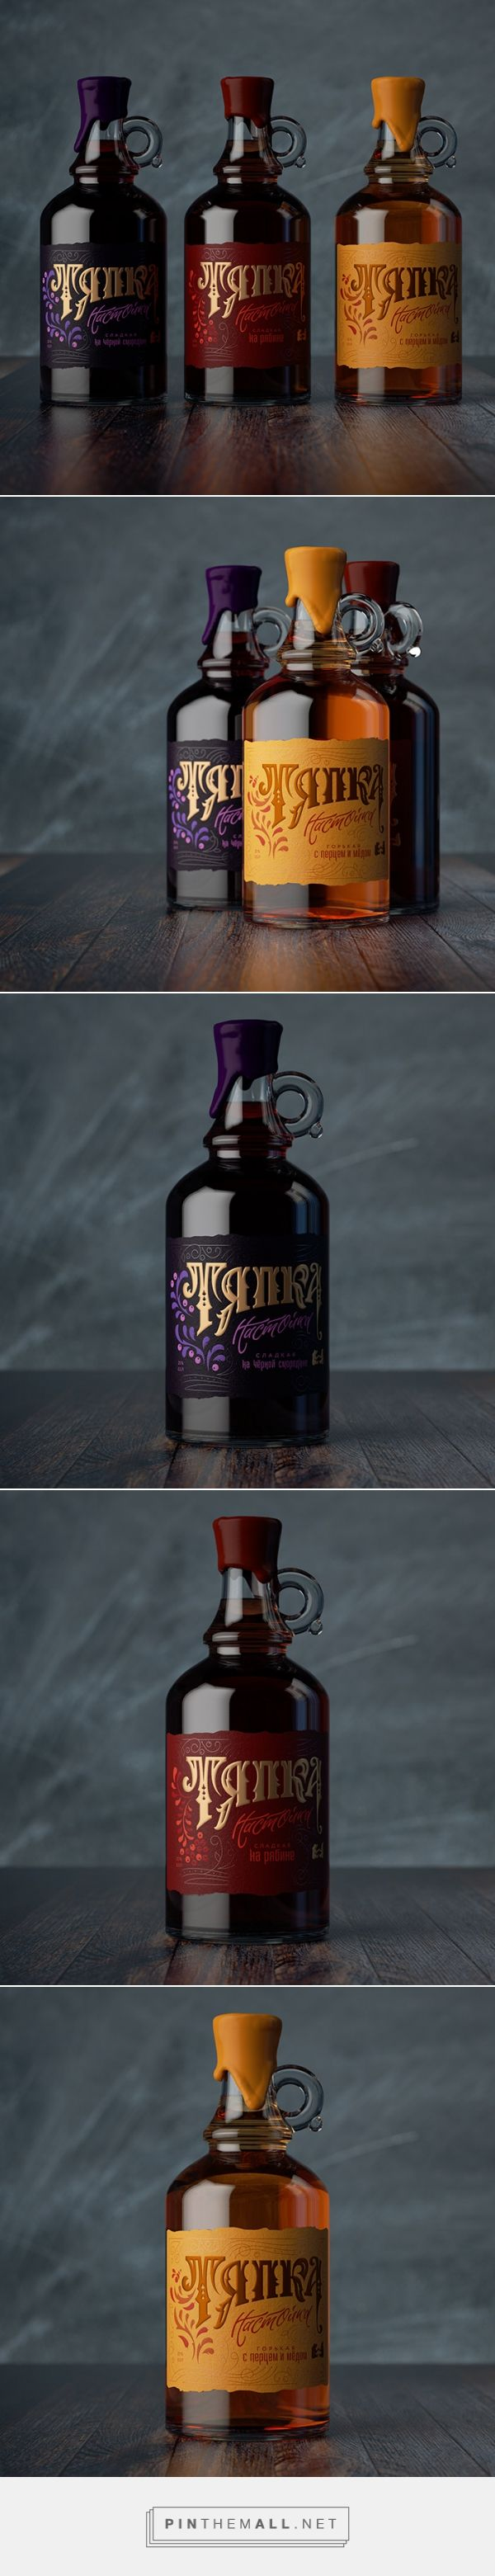 """Liquor """"Tyapka"""" by Gizmostudio. Source: Daily Package Design Inspiration. Pin curated by #SFields99 #packaging #design"""